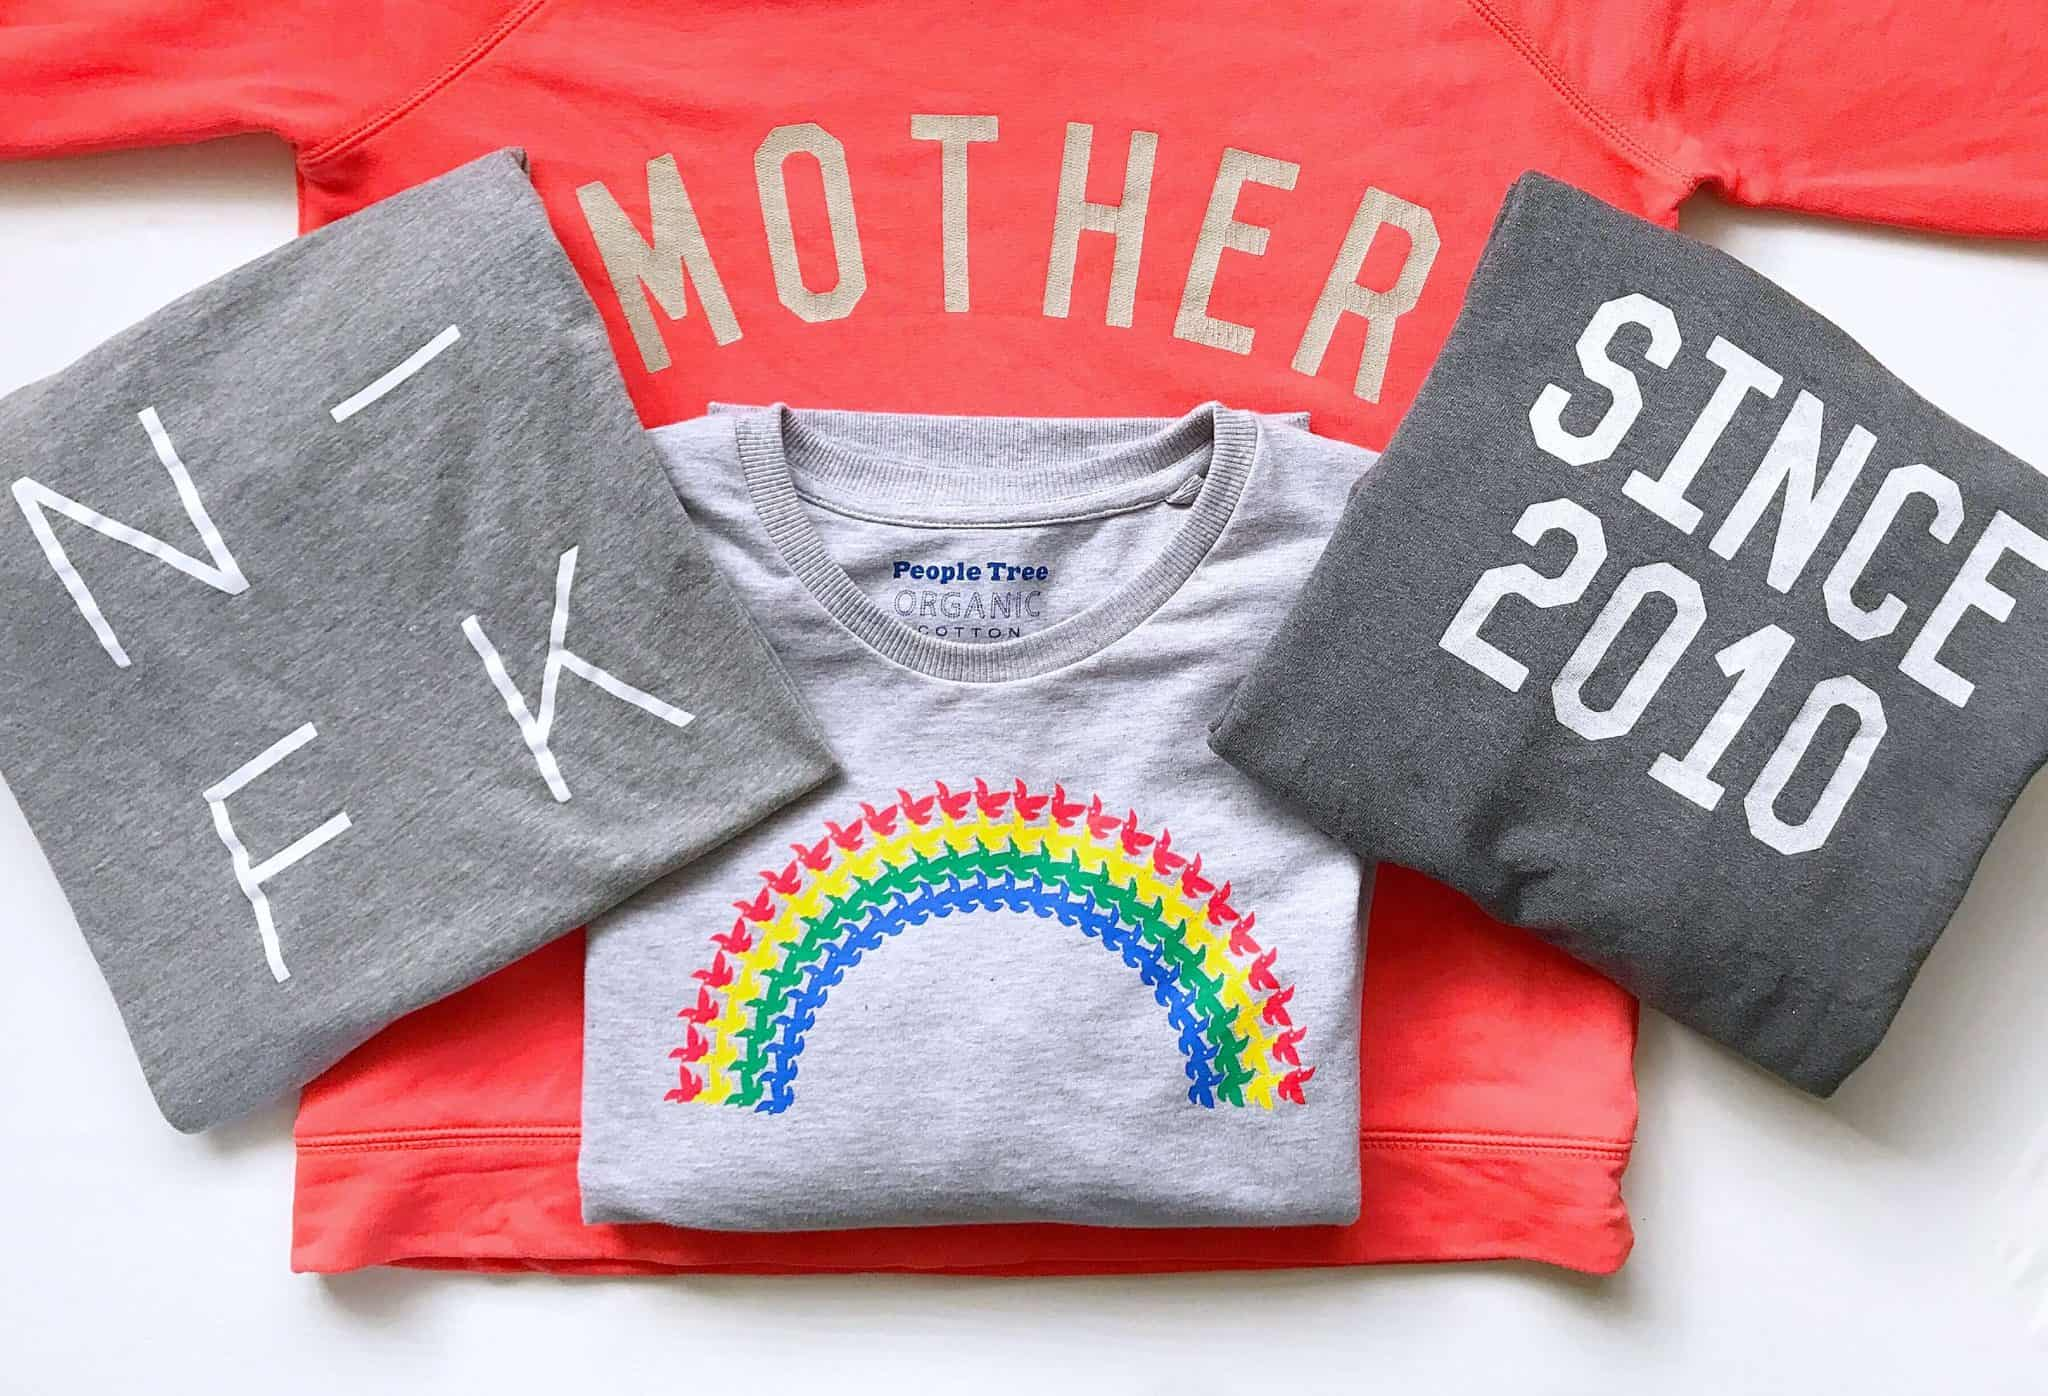 Ethically made sweatshirts from Family Store, People Tree and Nor-Folk